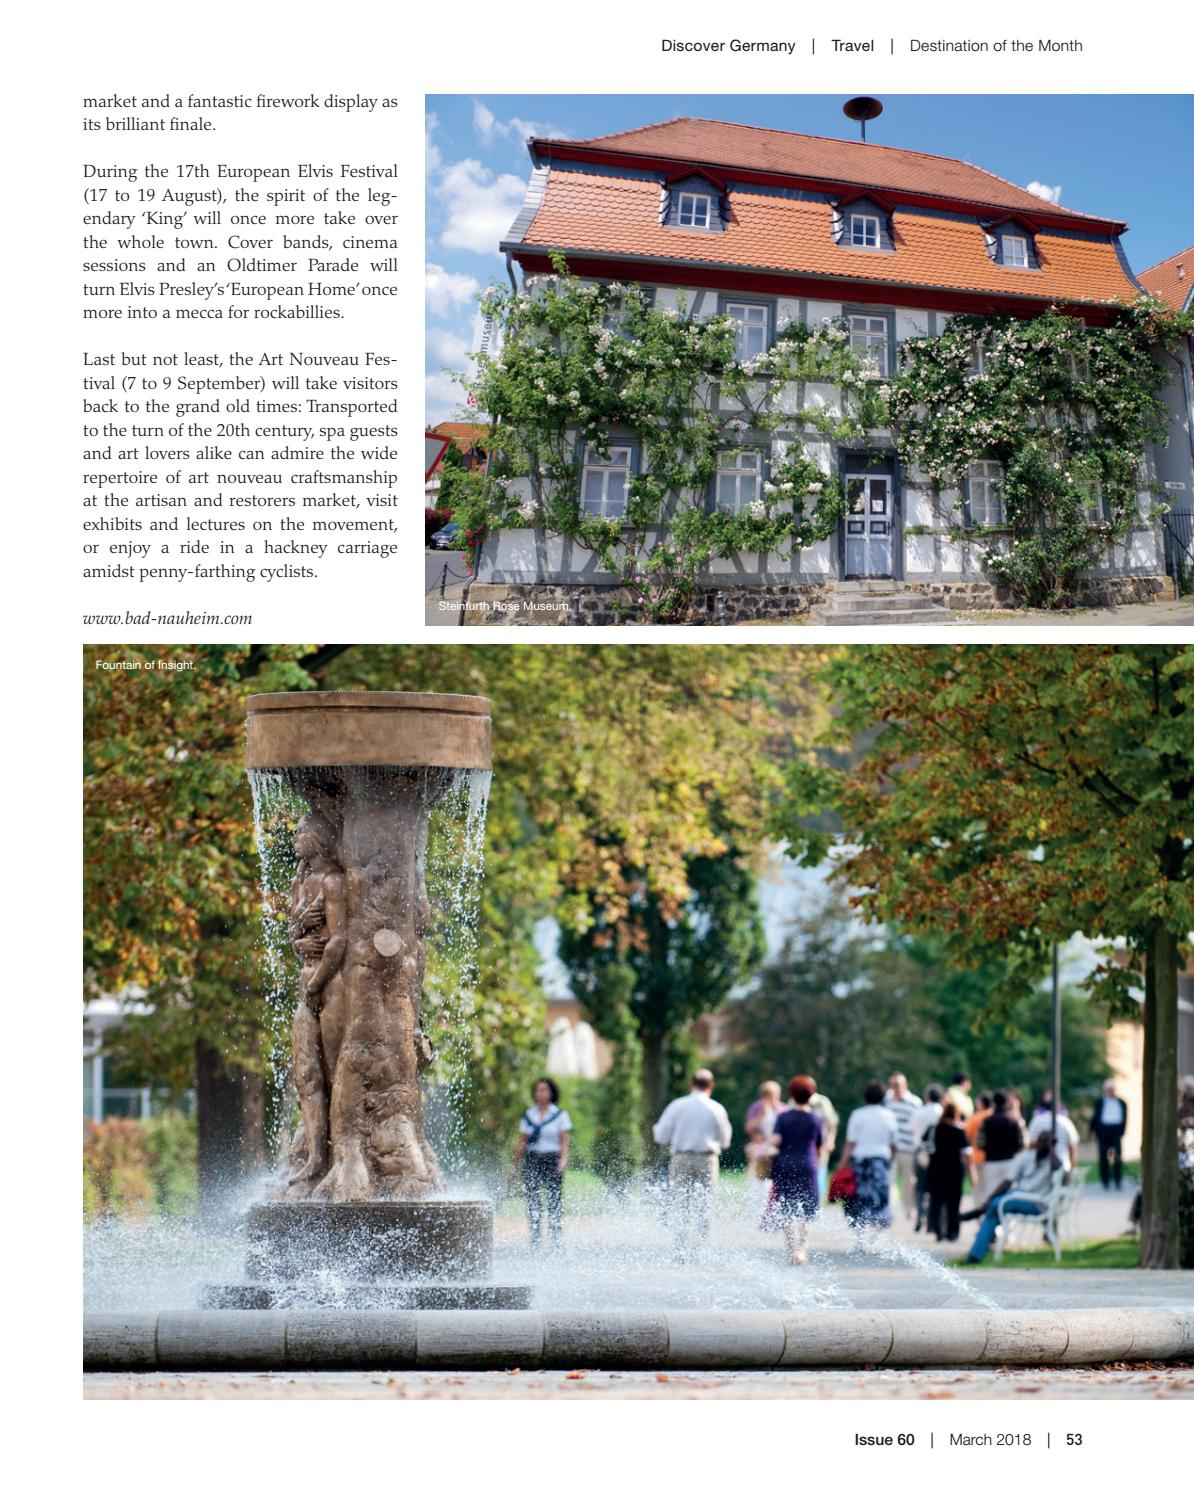 Discover Germany, Issue 60, March 2018 by Scan Group - issuu